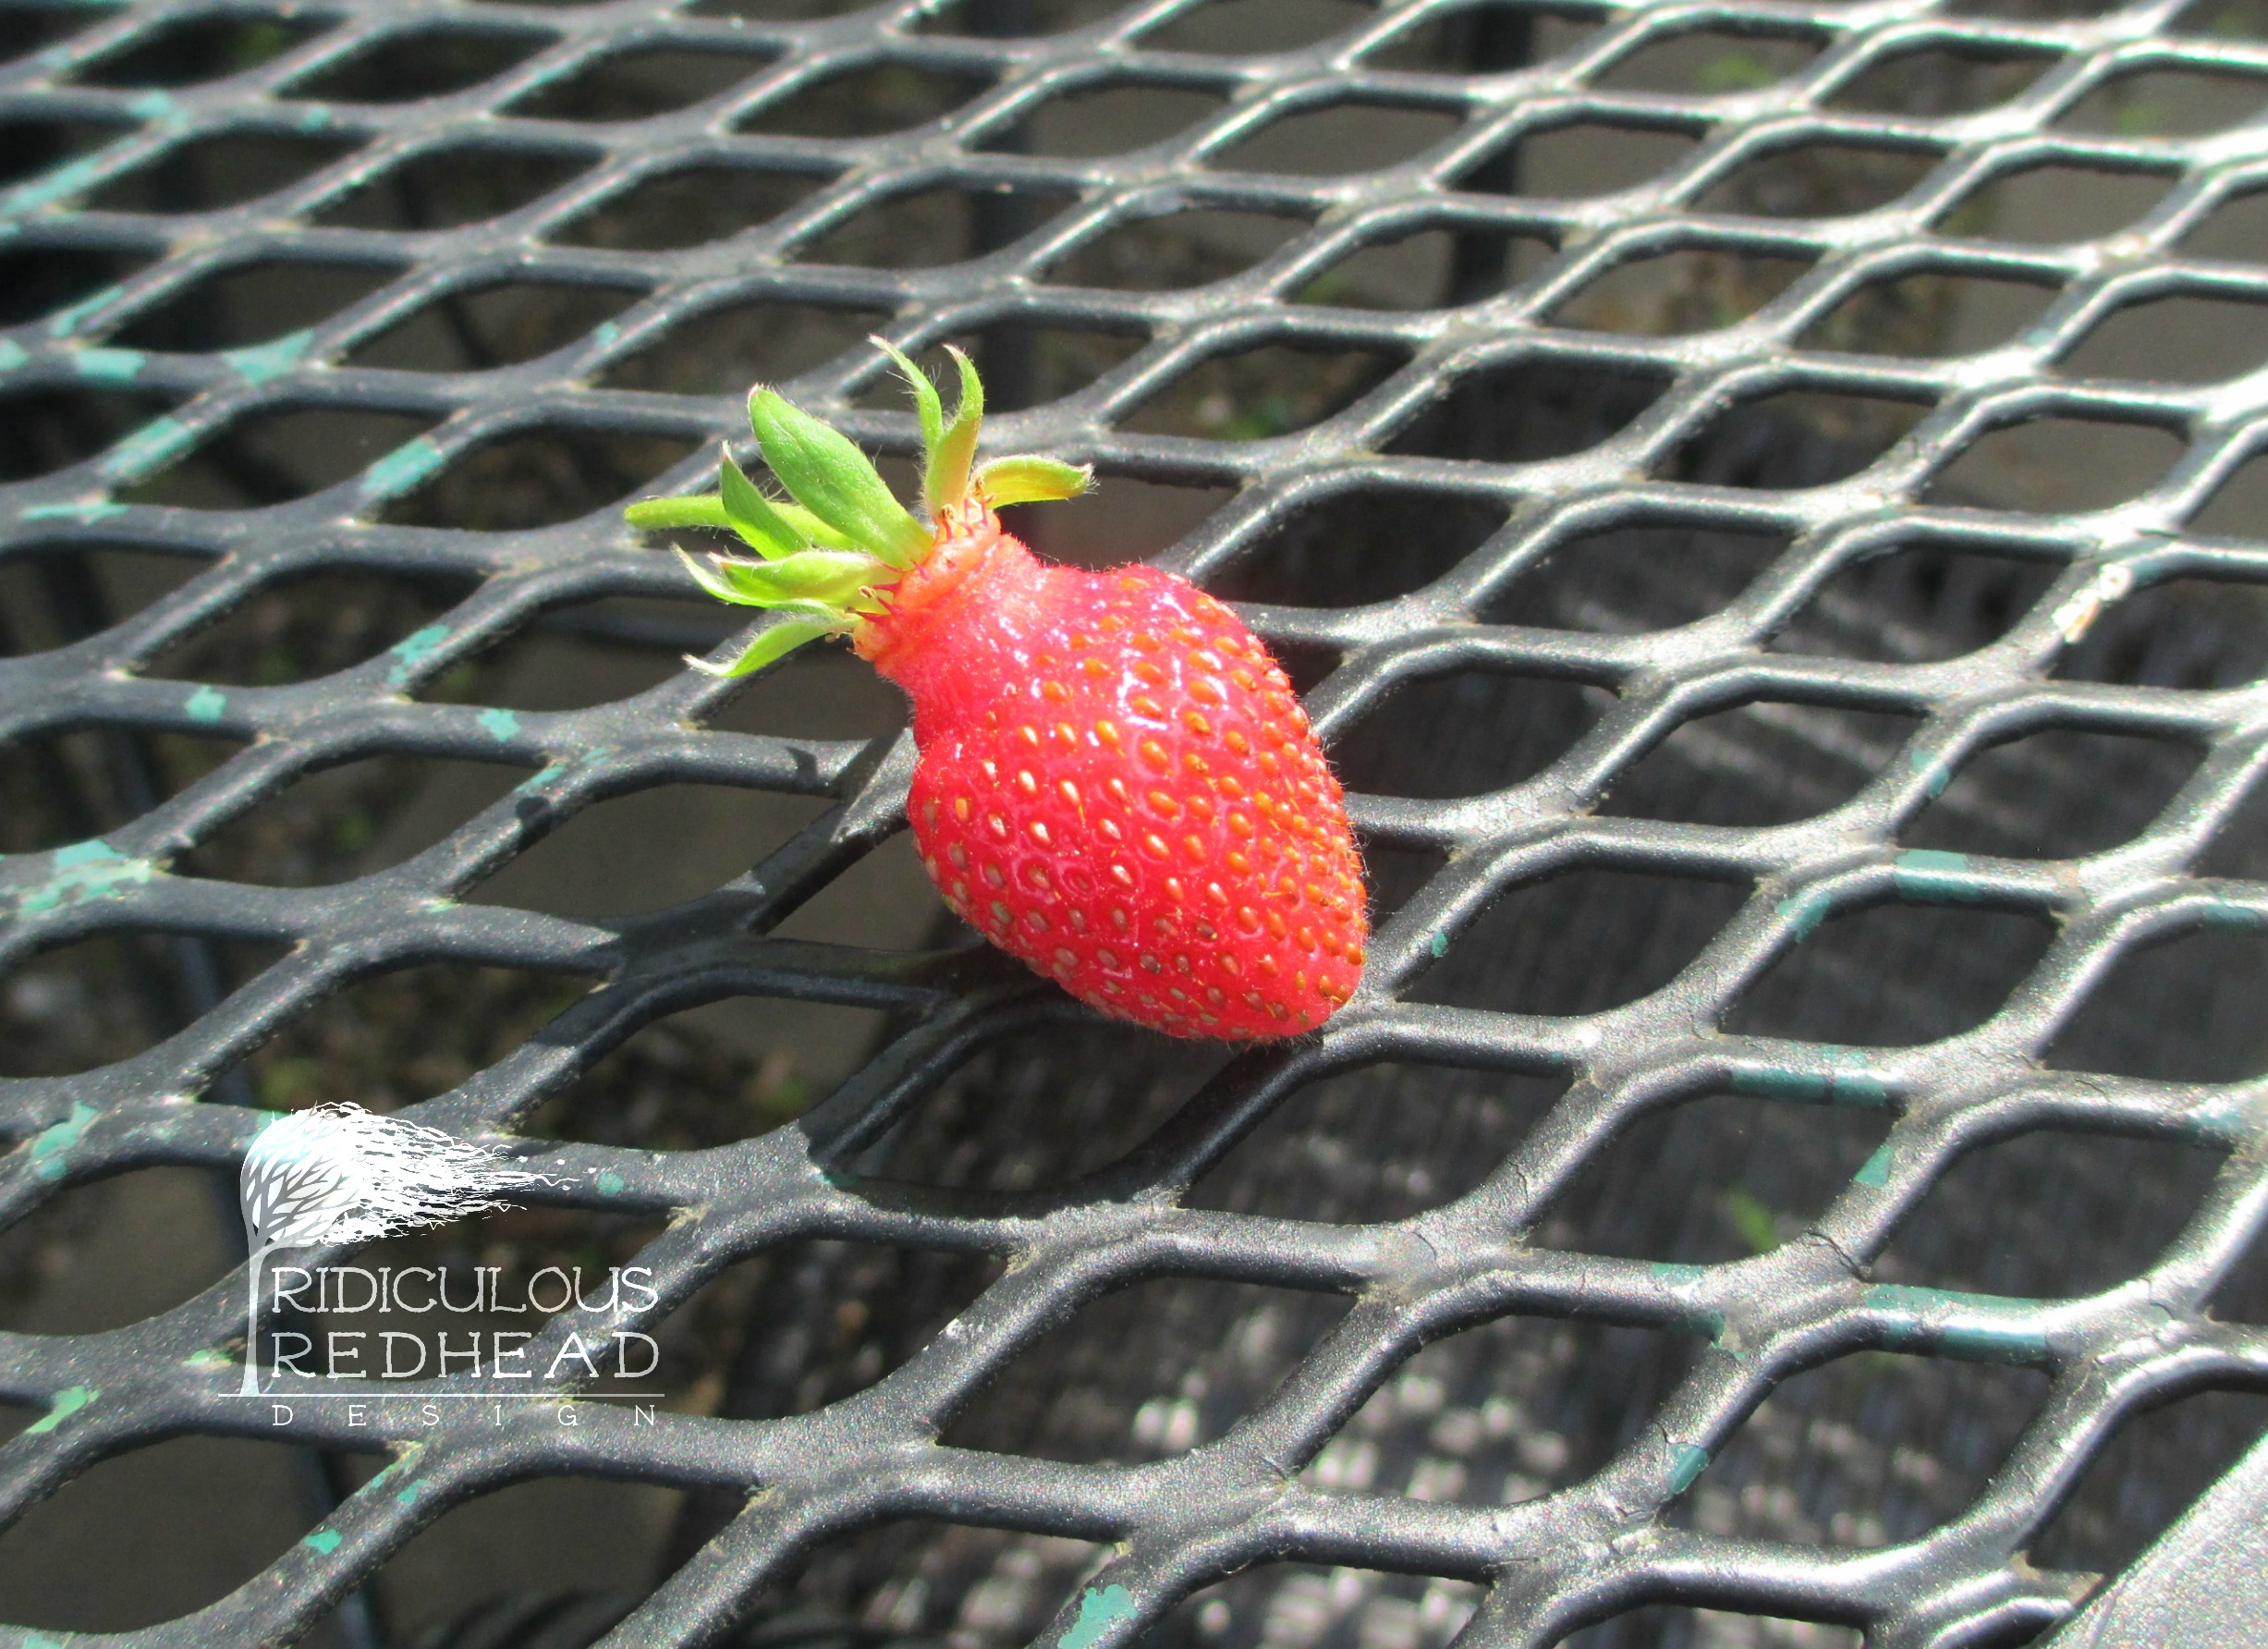 Ridiculous Redhead First Strawberry